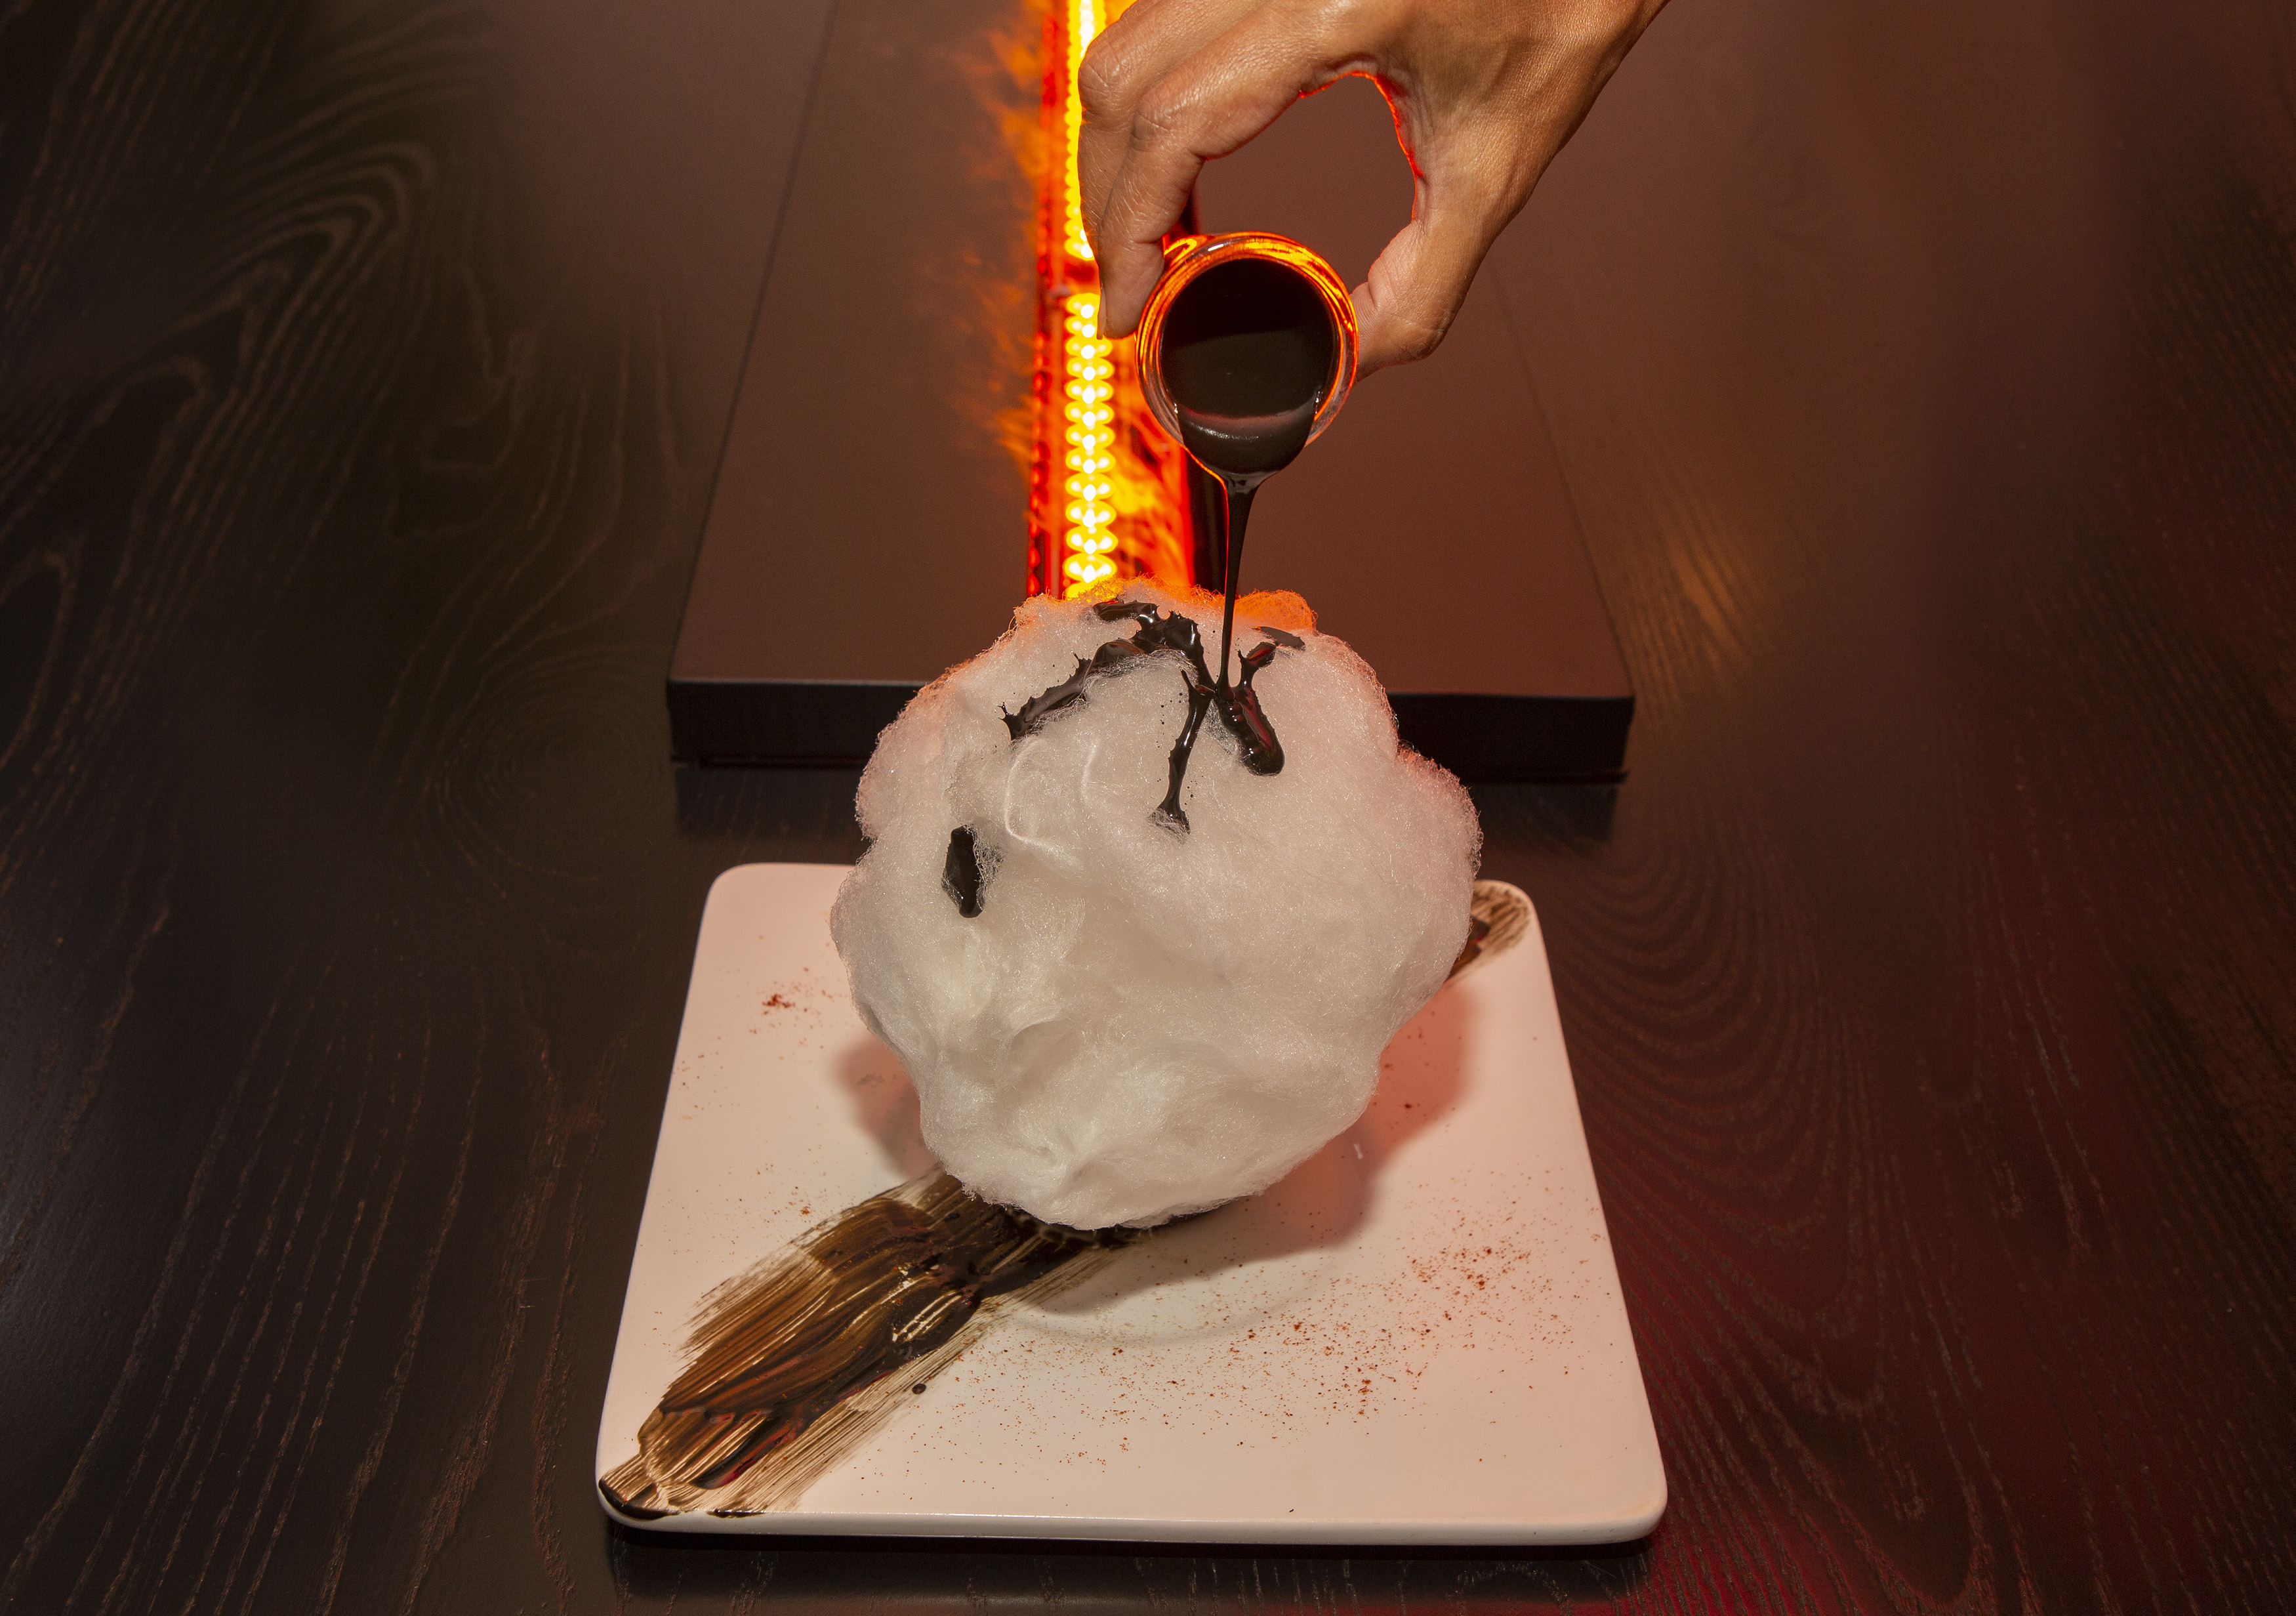 A dessert with chocolate sauce poured on top.